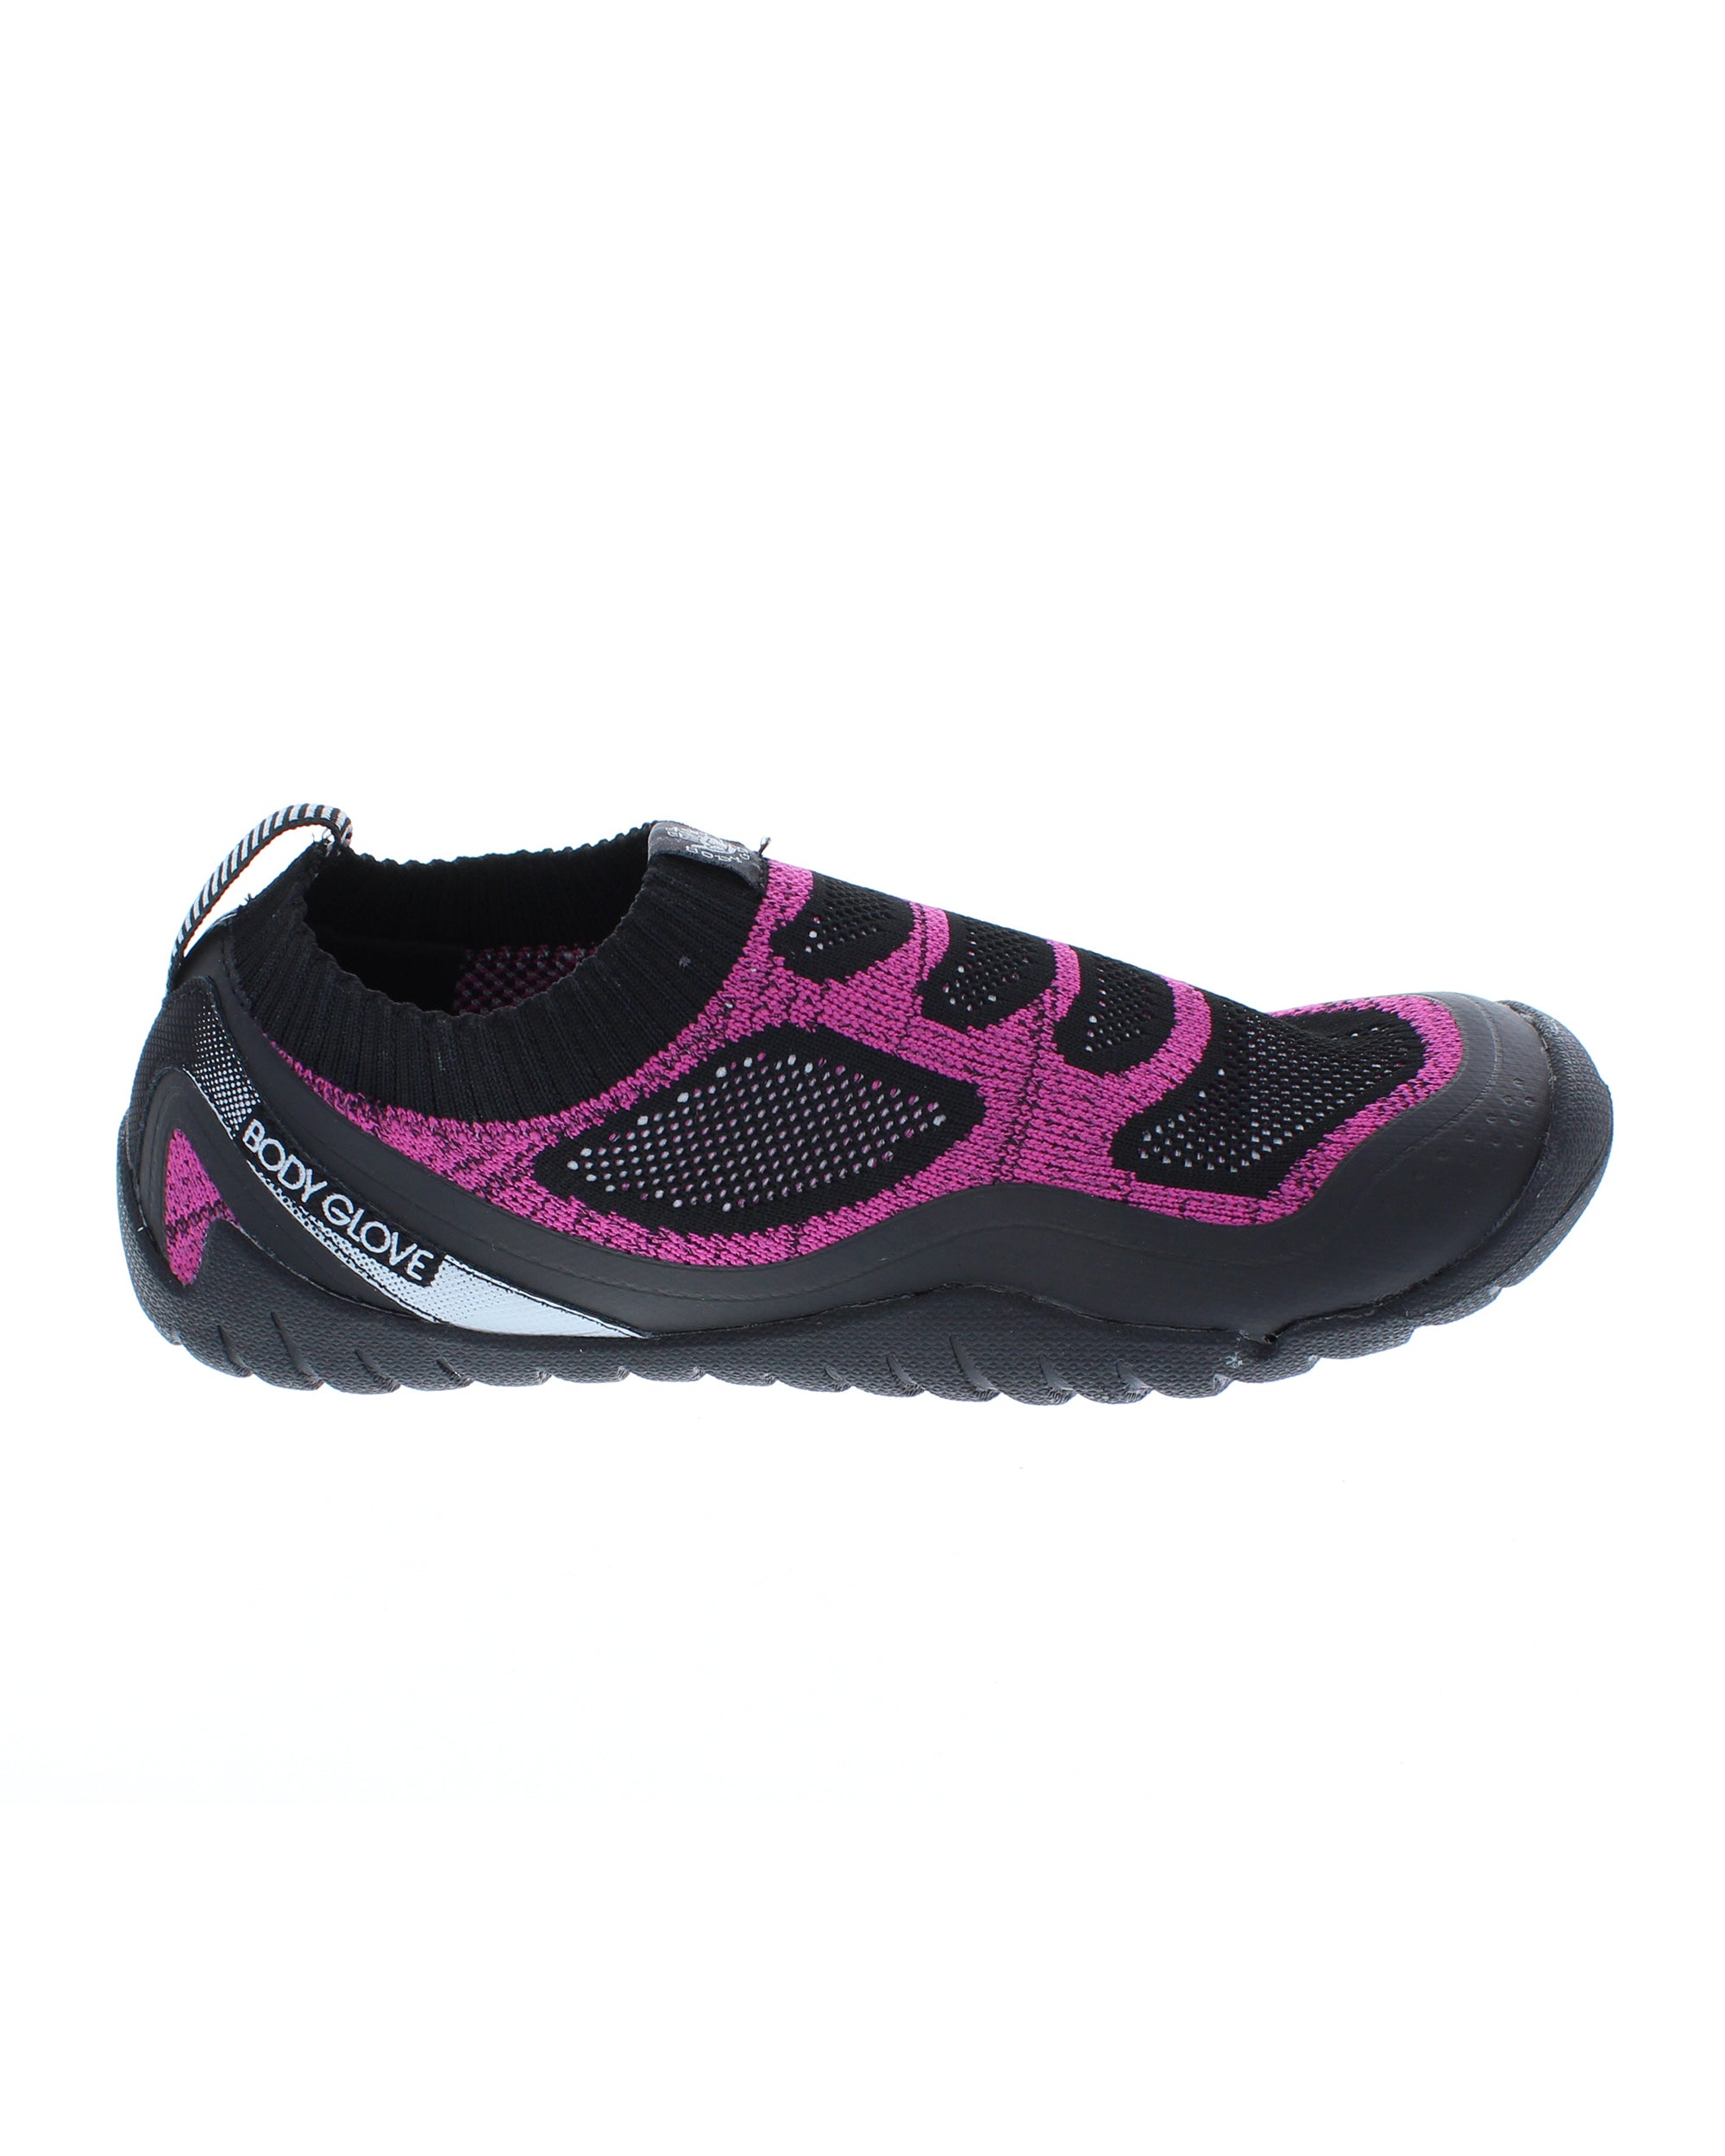 c9238f789570 Women's AEON Water Shoes - Black/Oasis Pink – Body Glove